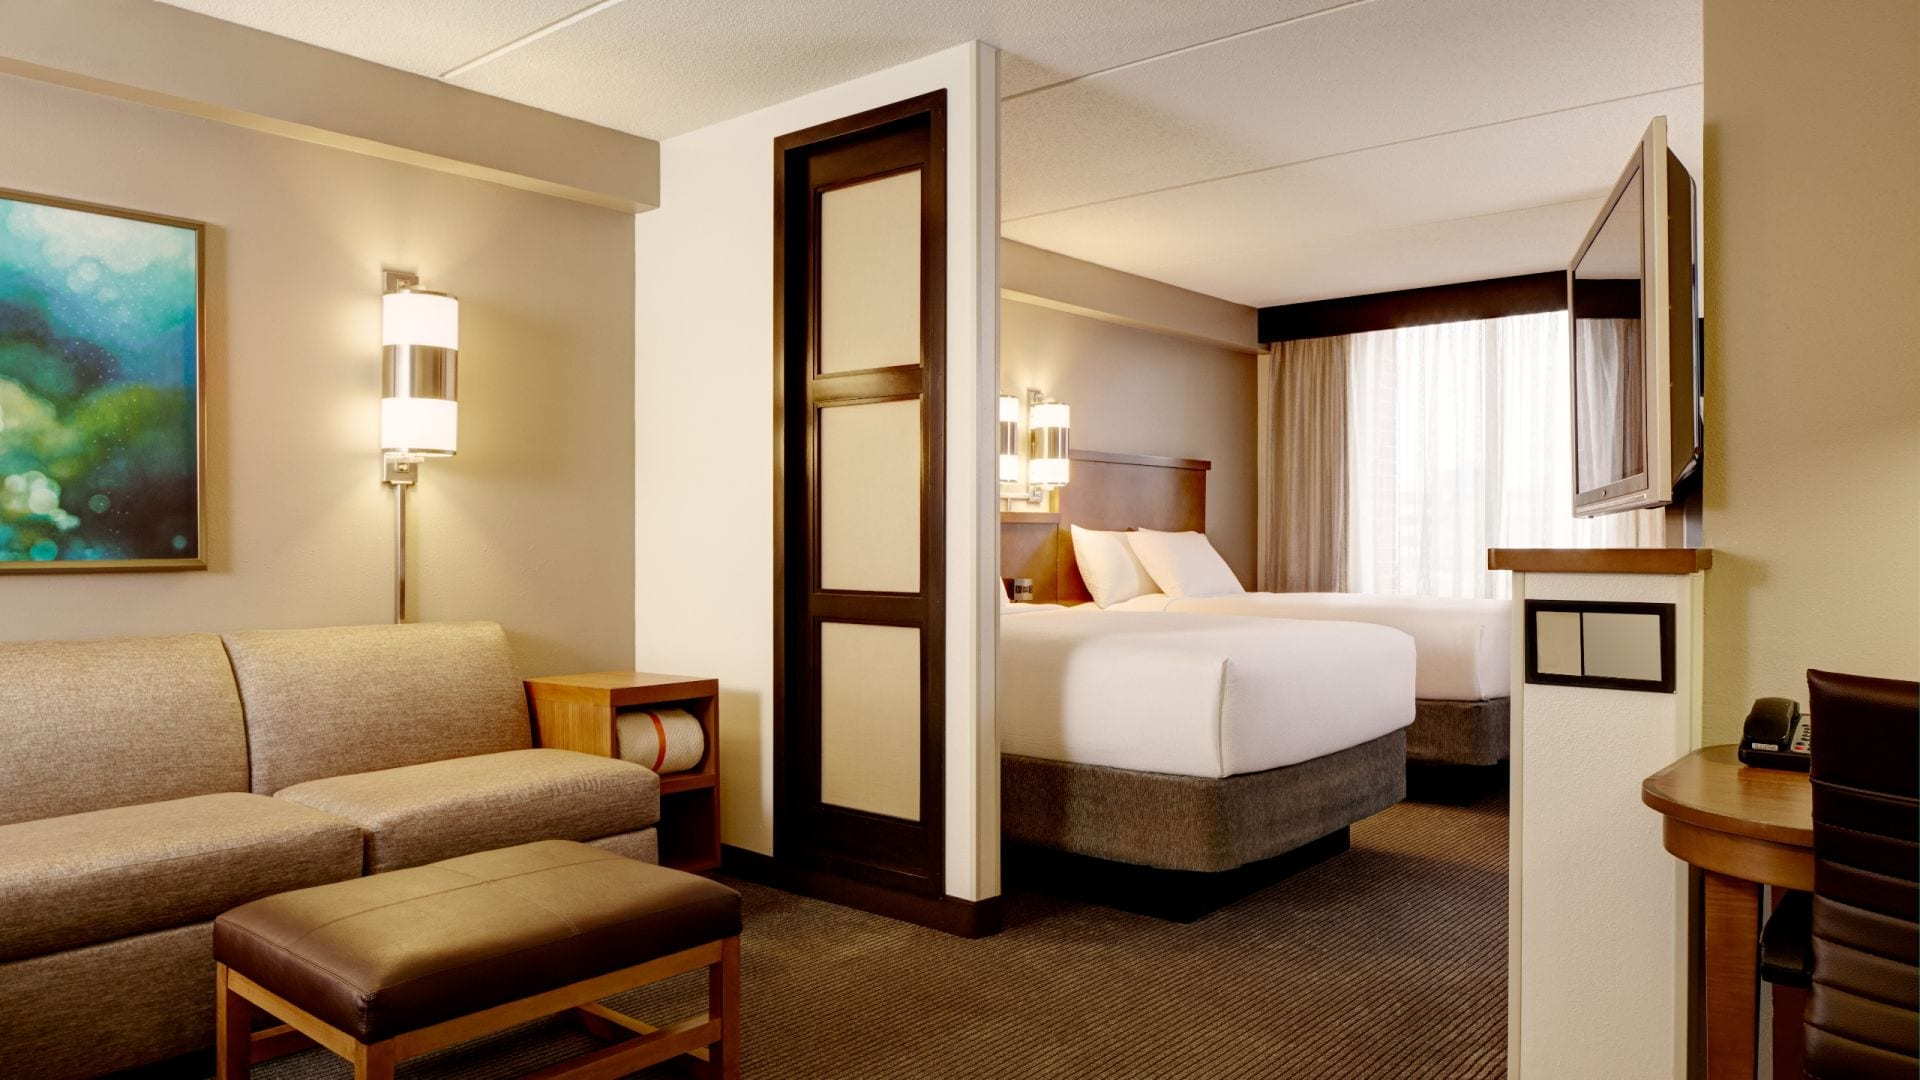 Hyatt Place Kansas City Airport Room with Two Beds